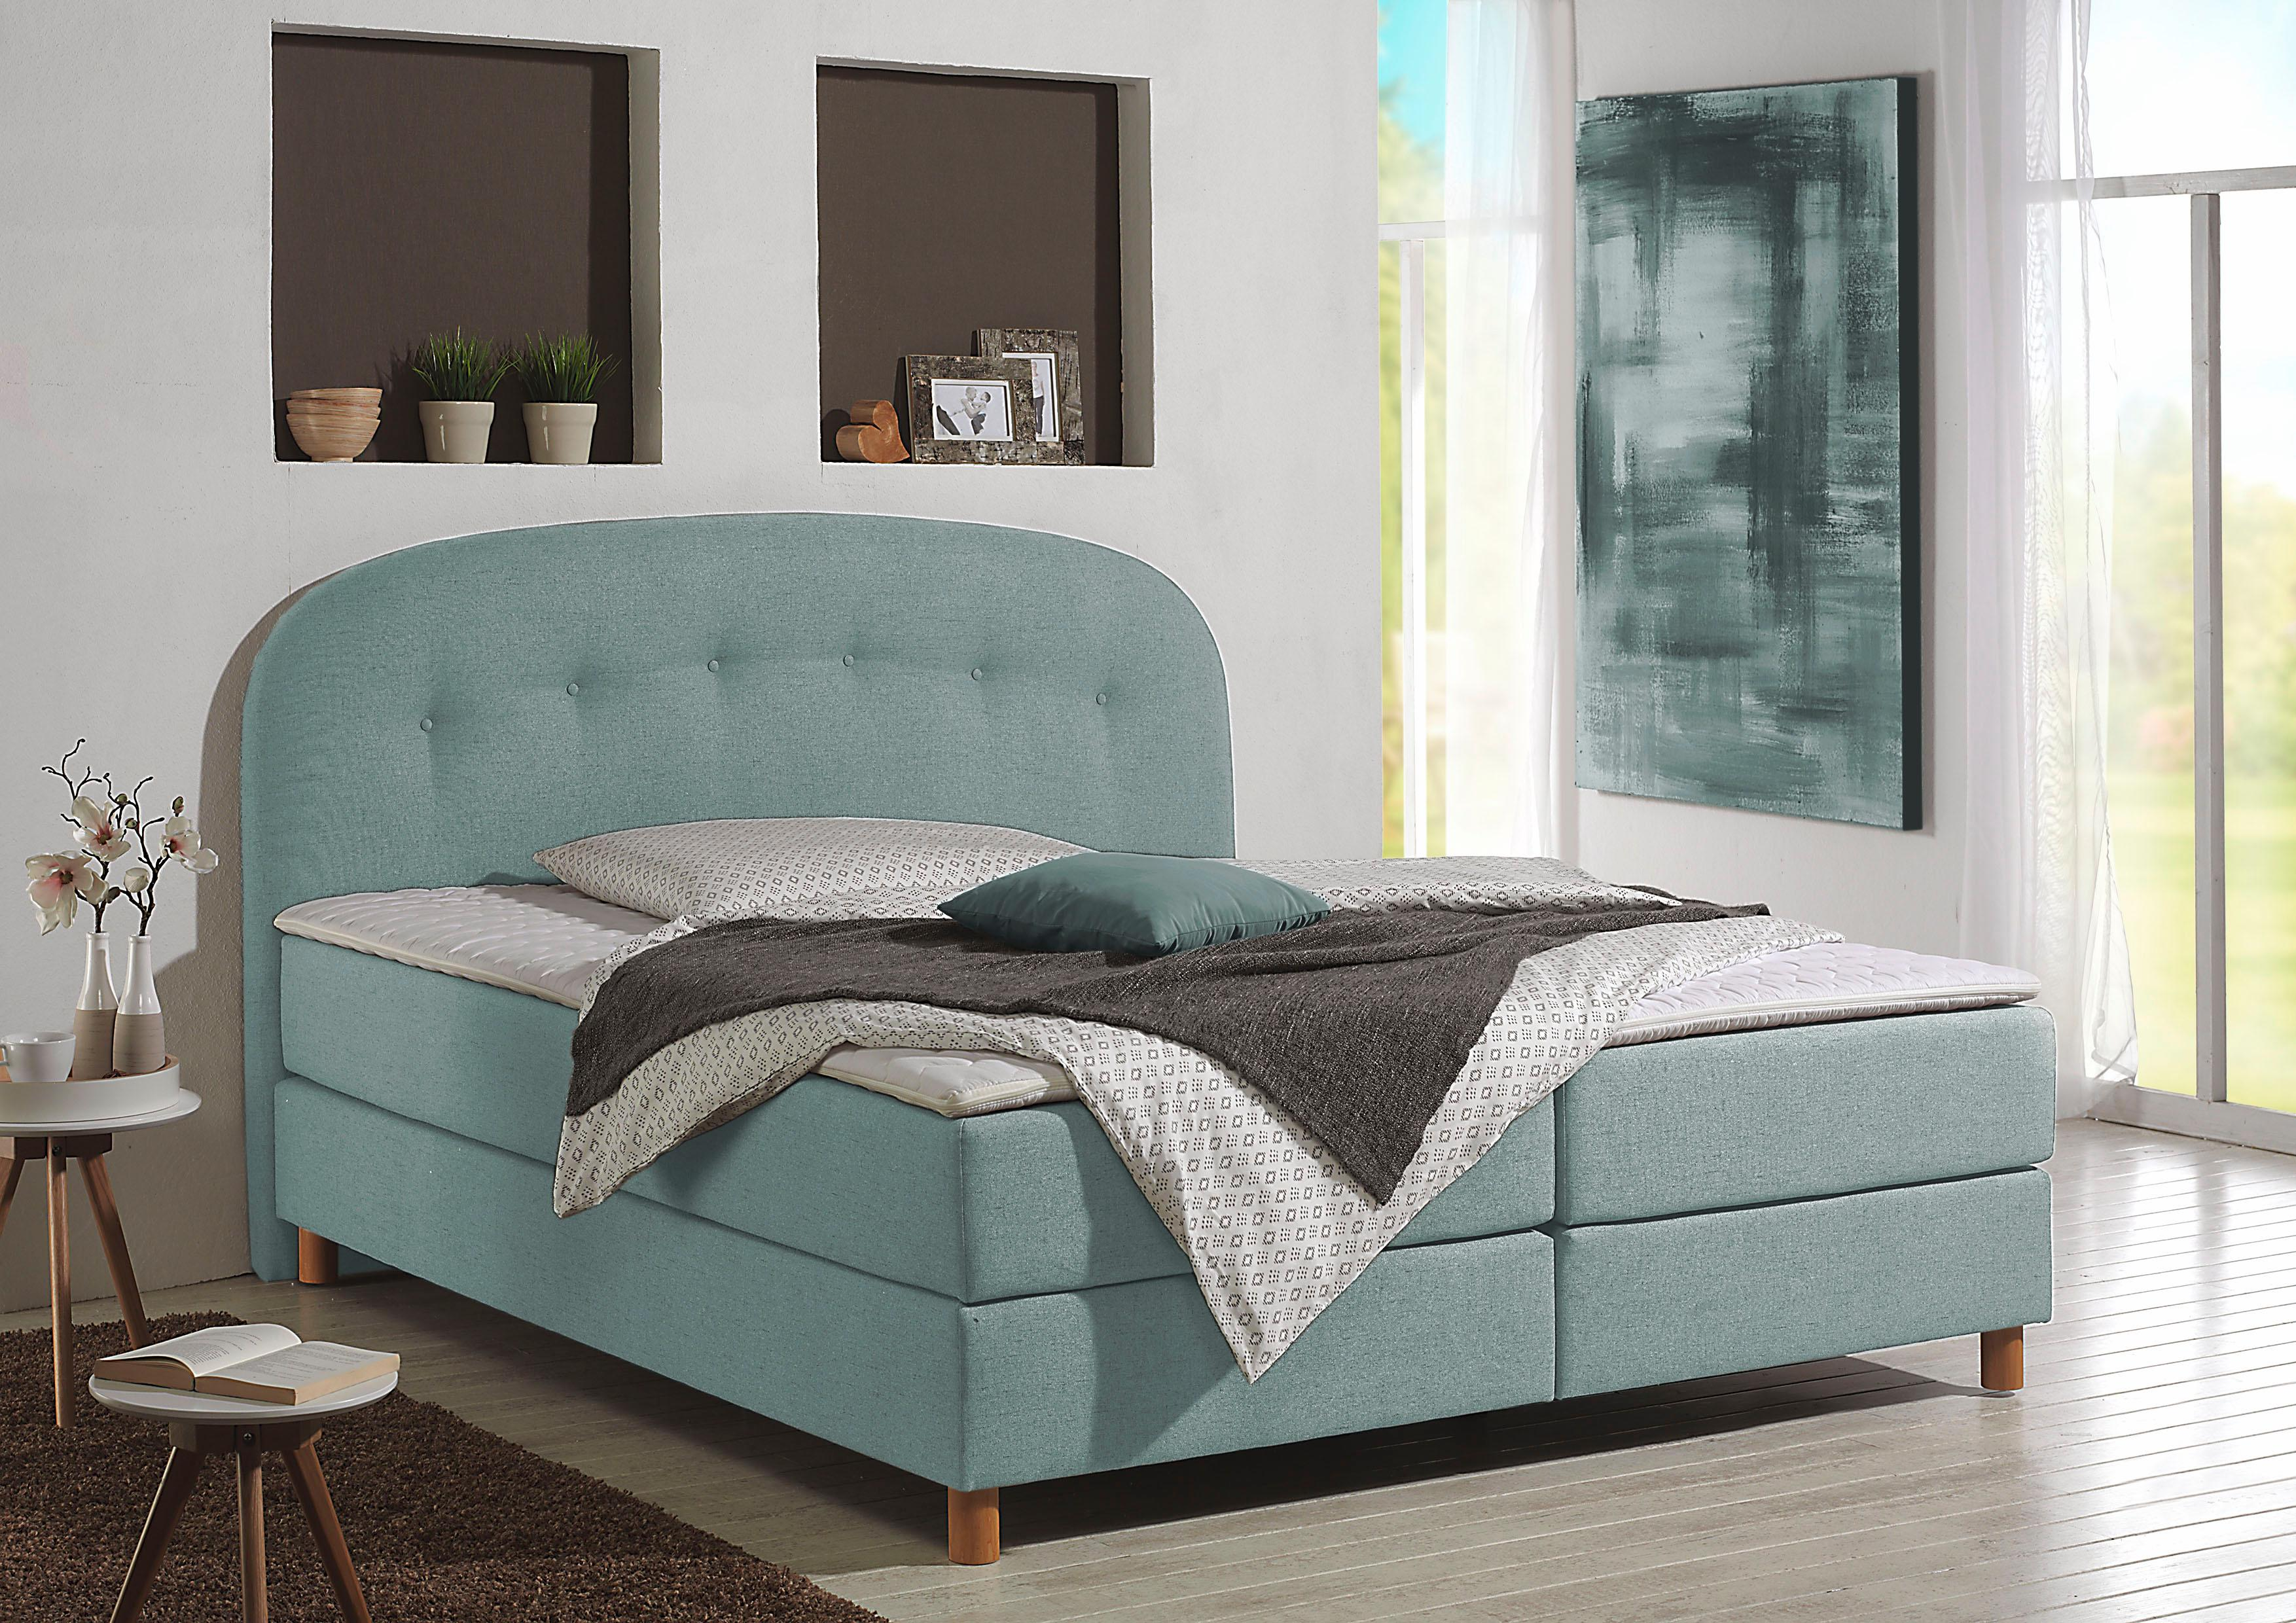 Home affaire Boxspringbett Dylan | Schlafzimmer > Betten > Boxspringbetten | Blau | Home Affaire